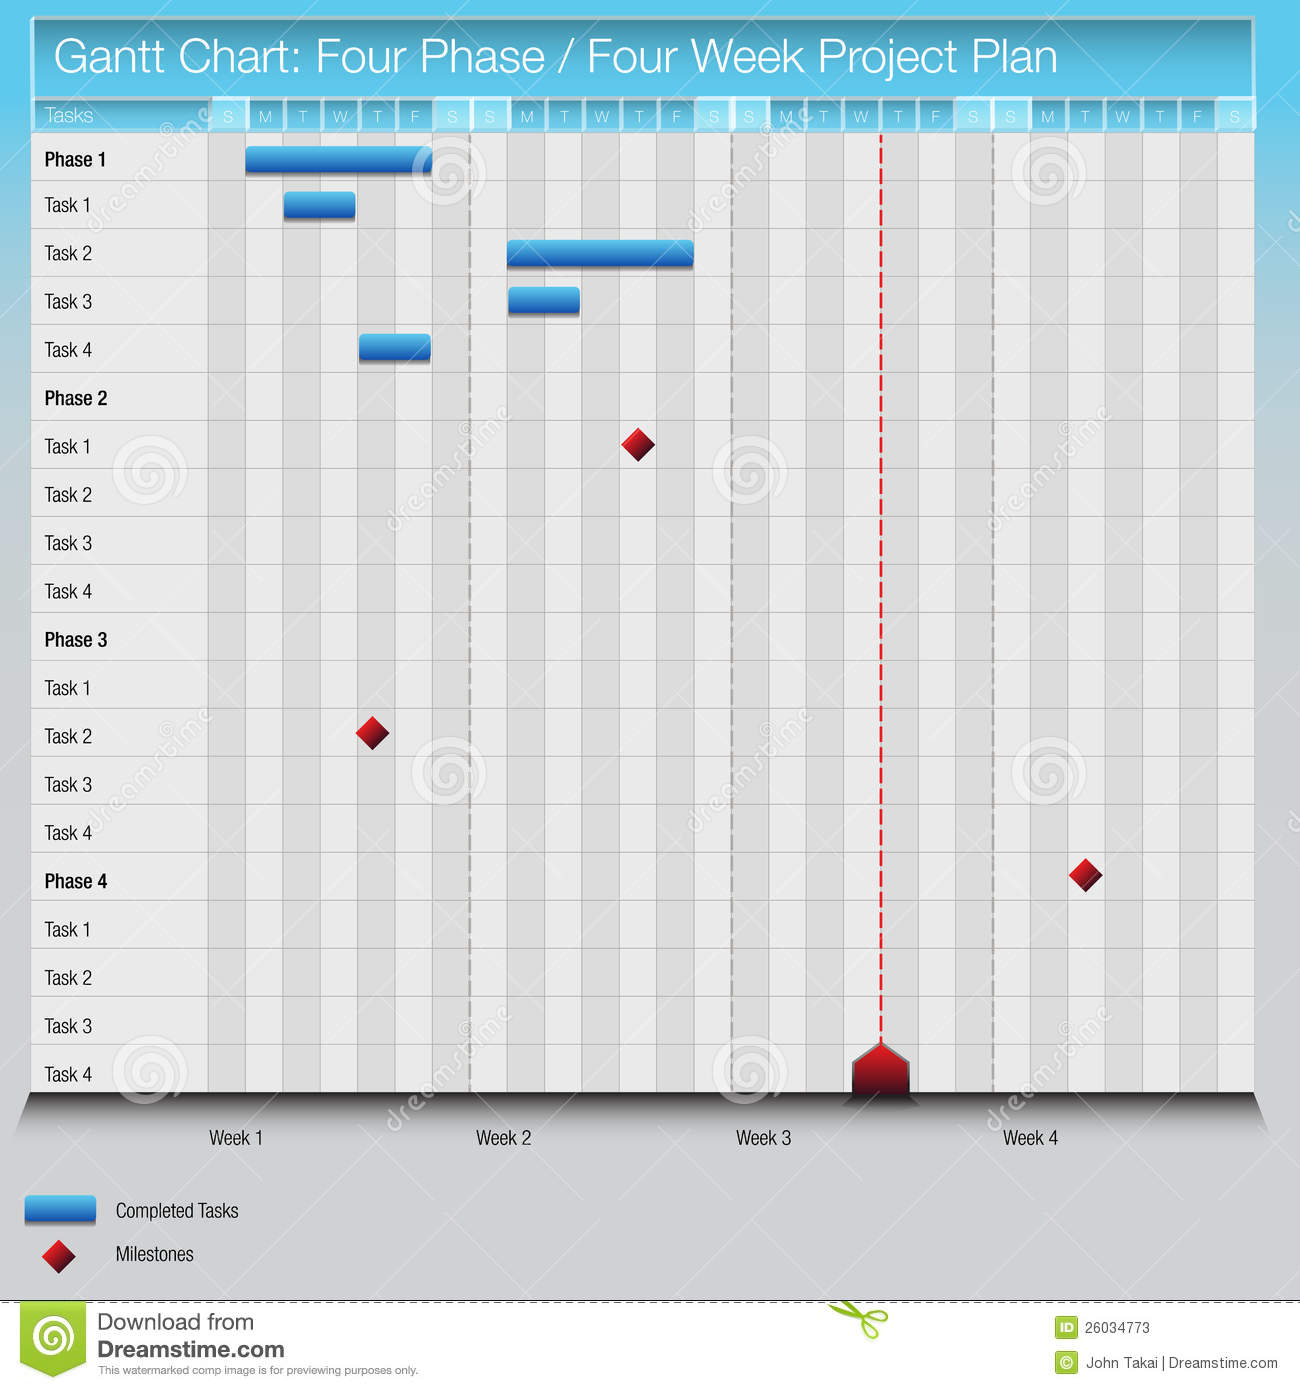 Sample Chart Templates gantt chart weekly template : Gantt Chart Weekly Four Week Plan Gantt Chart